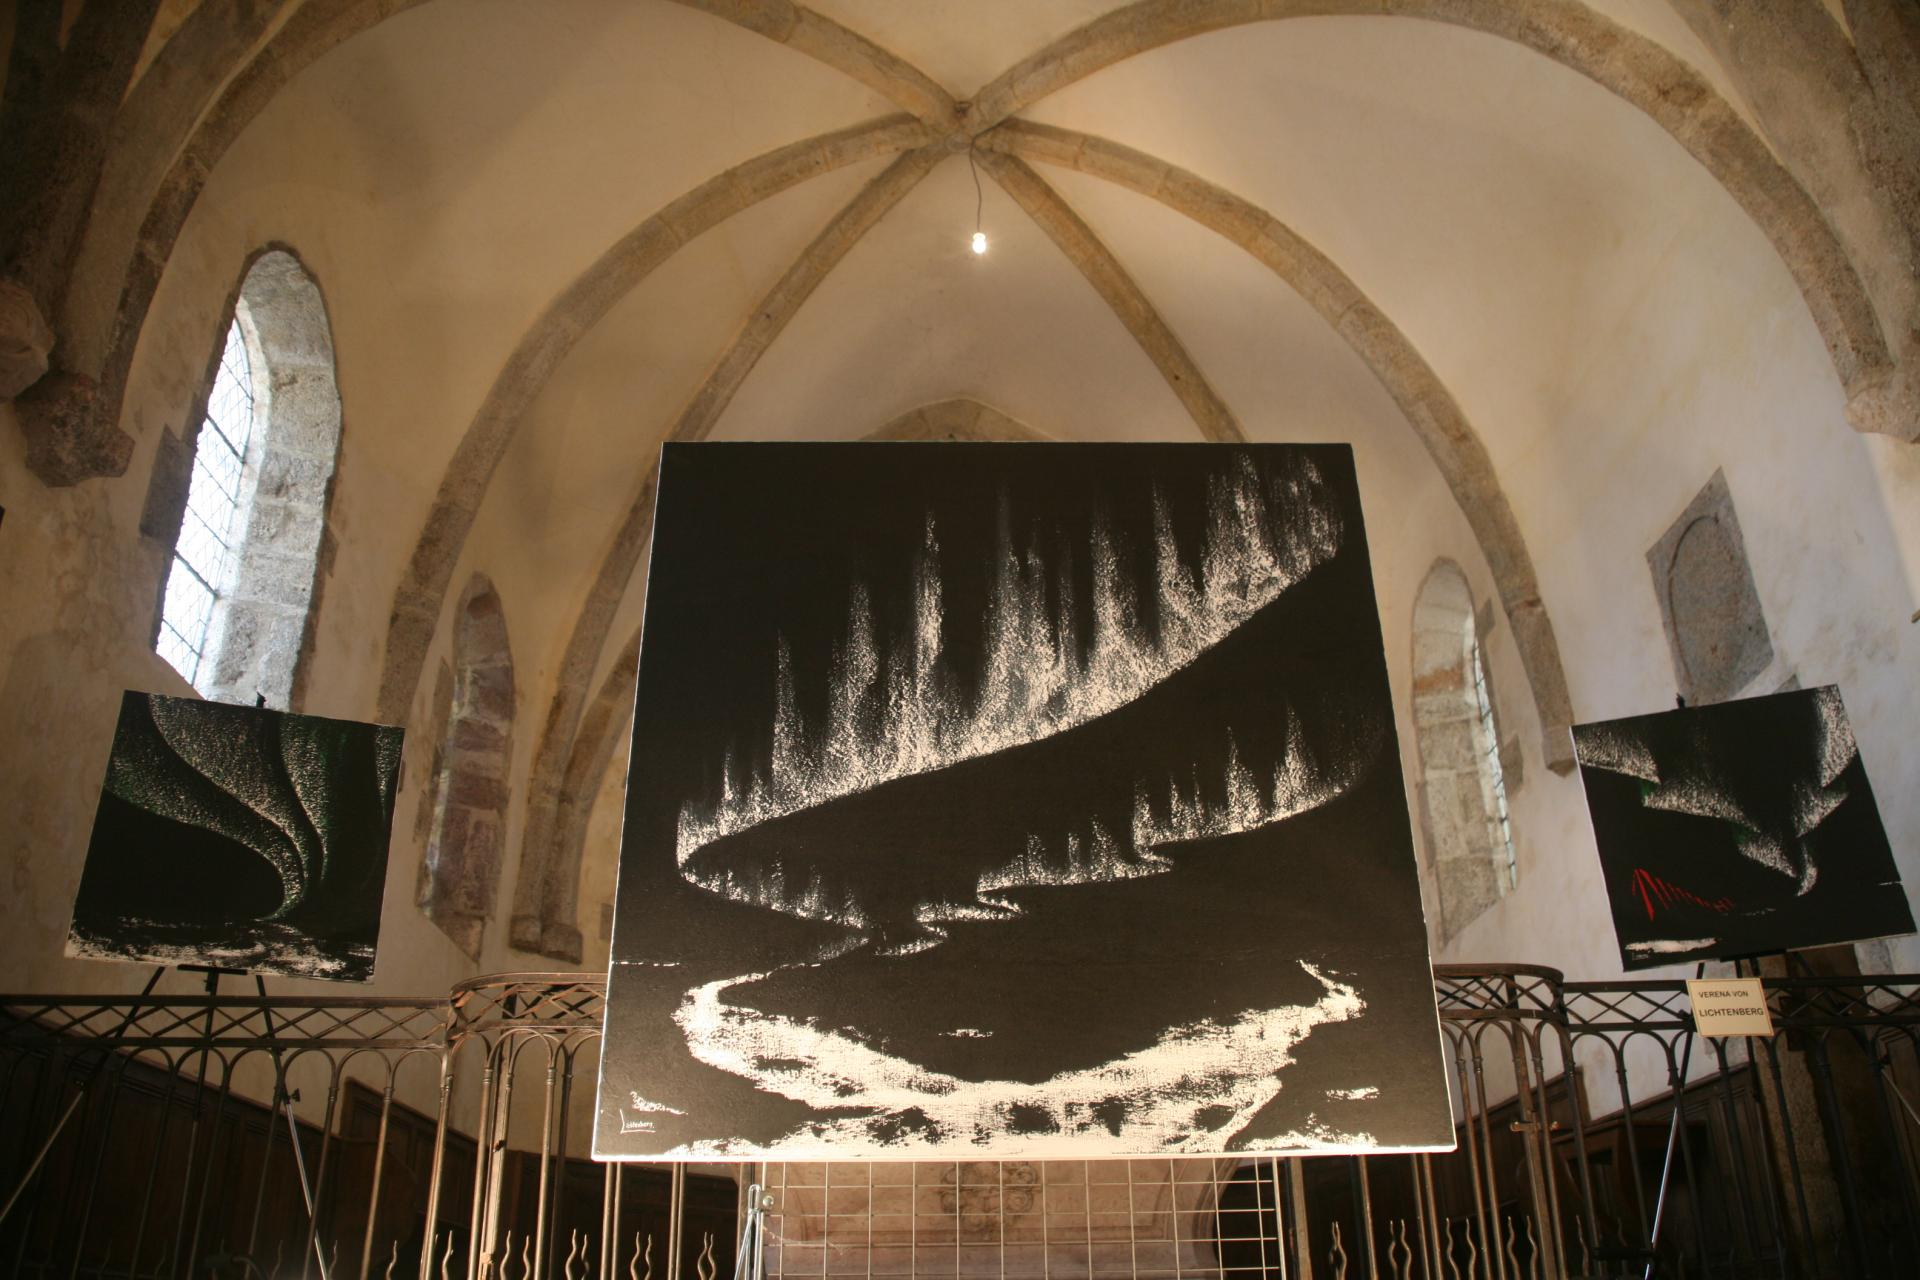 The painter verena von lichtenberg and her exhibition nord licht in saulieu in the st saturnin church